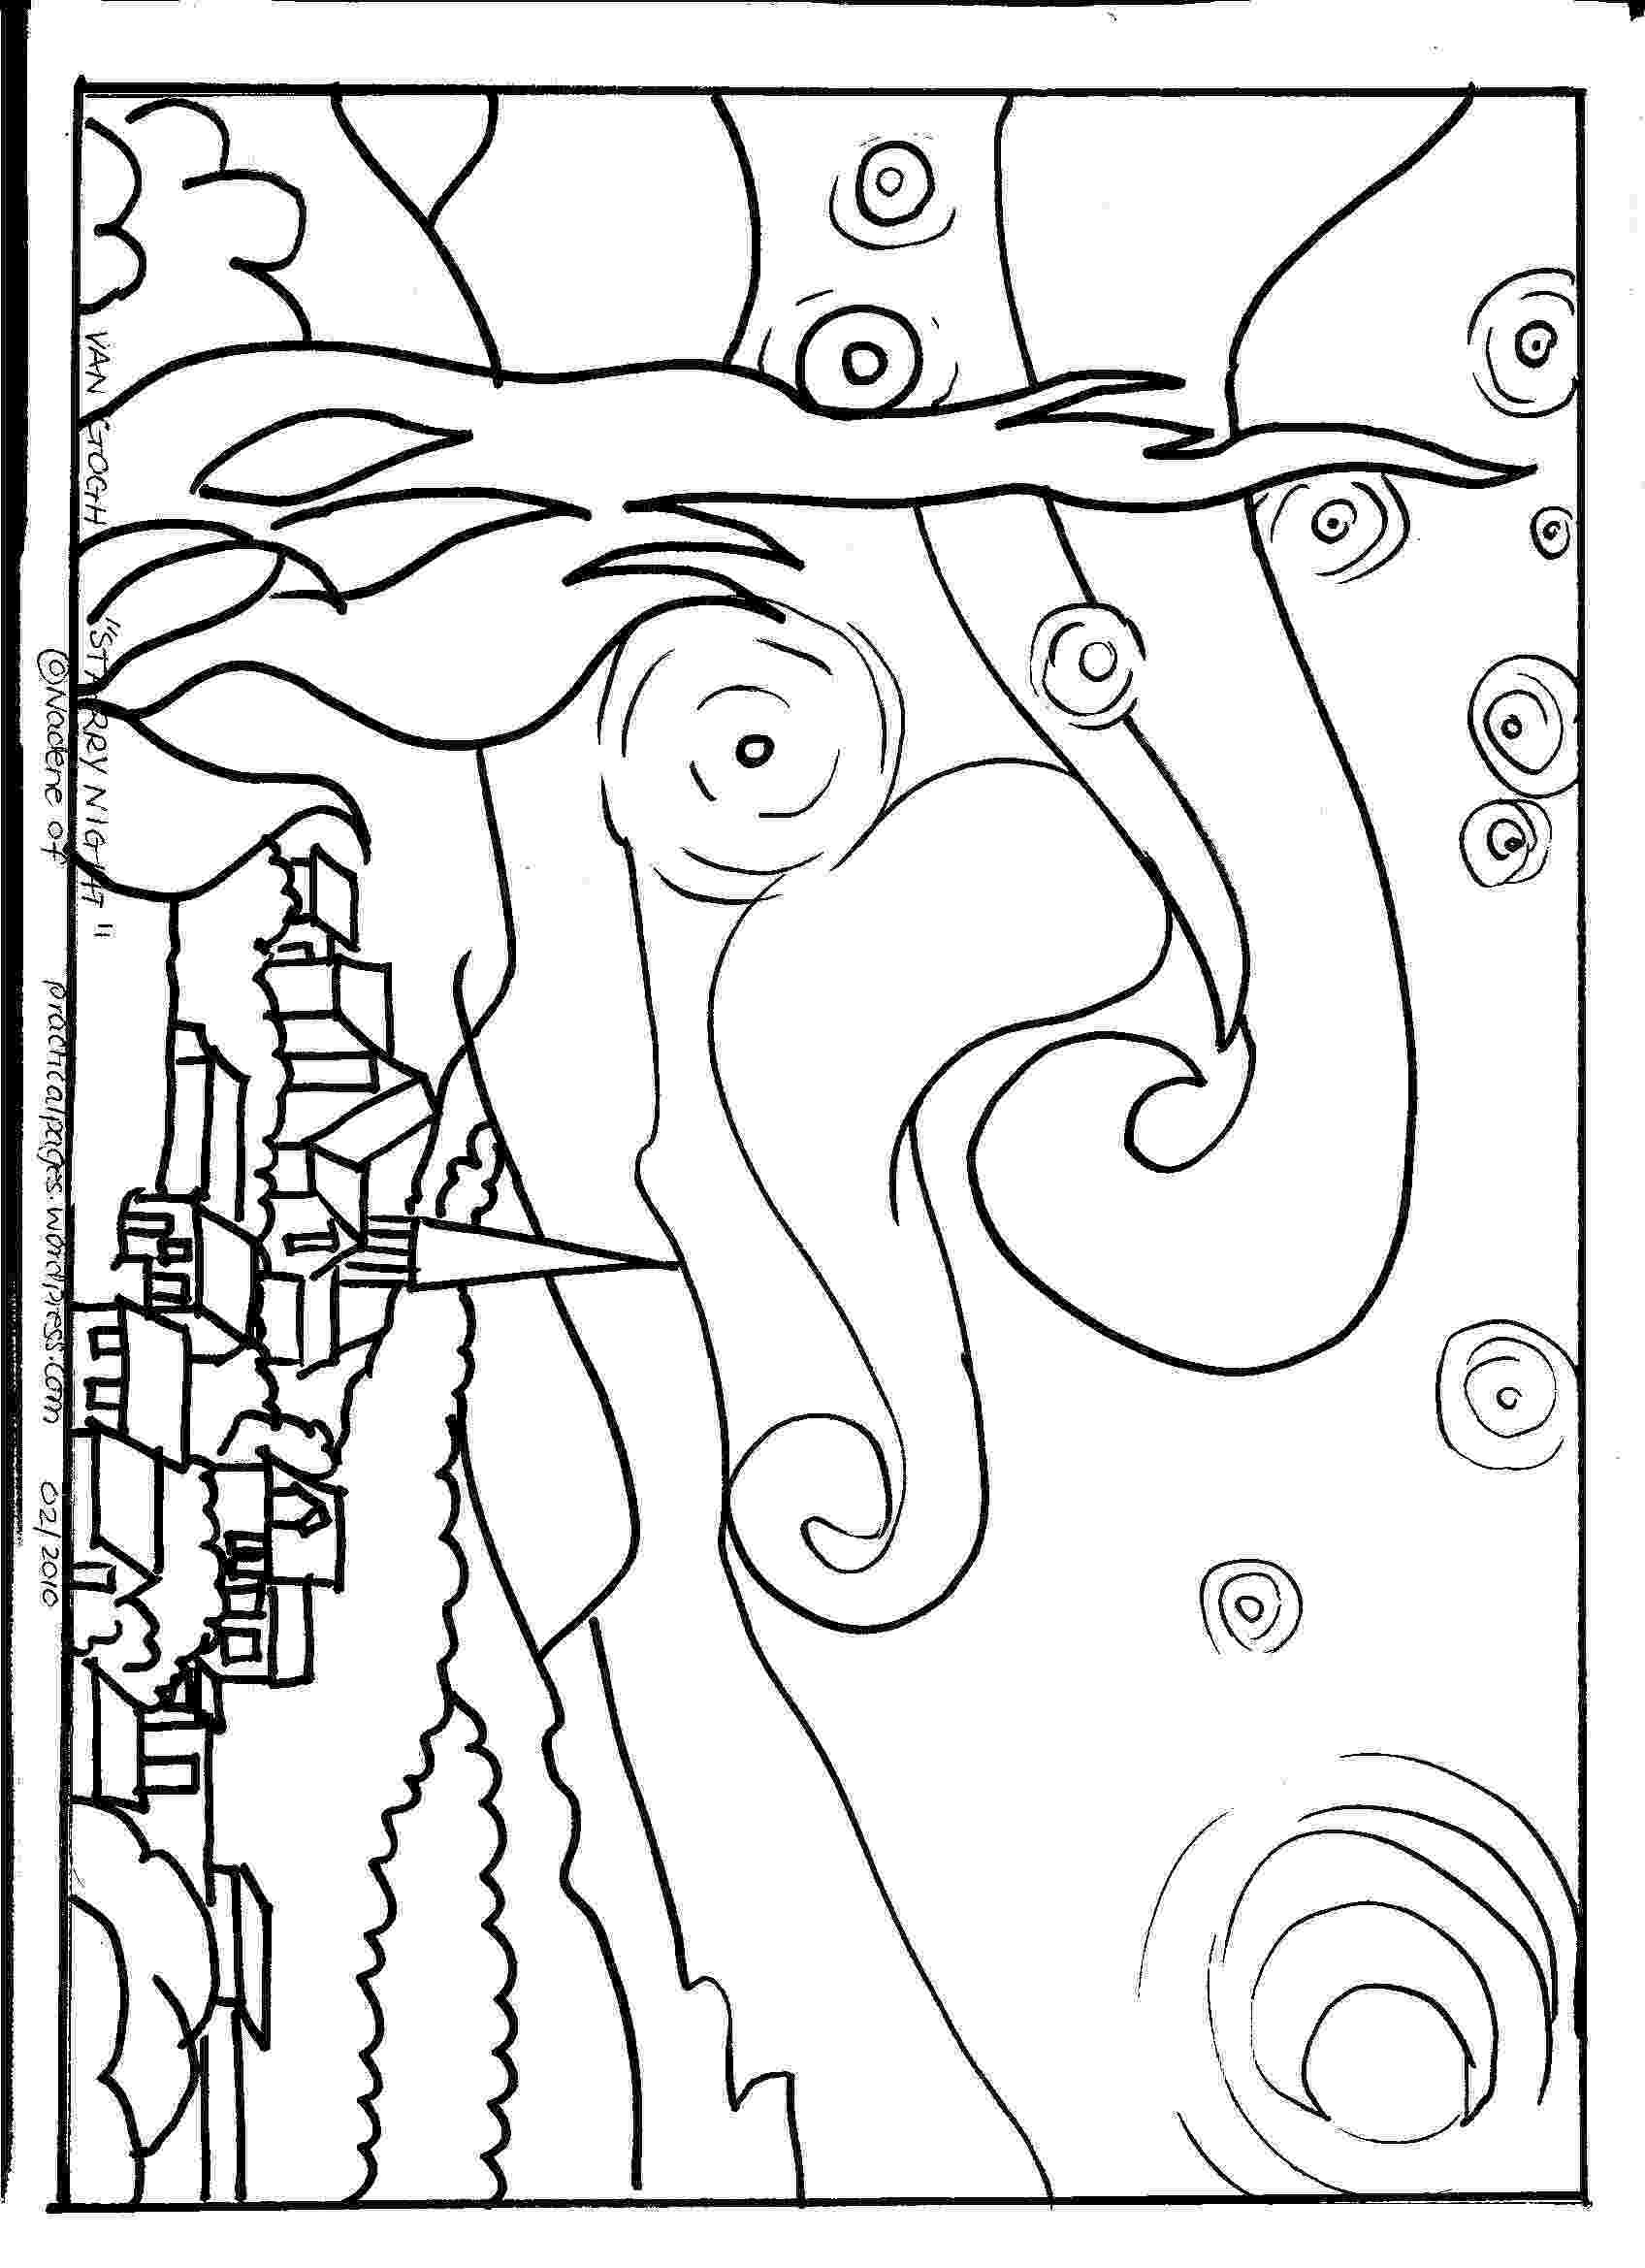 famous artists coloring pages happy family art original and fun coloring pages coloring pages famous artists